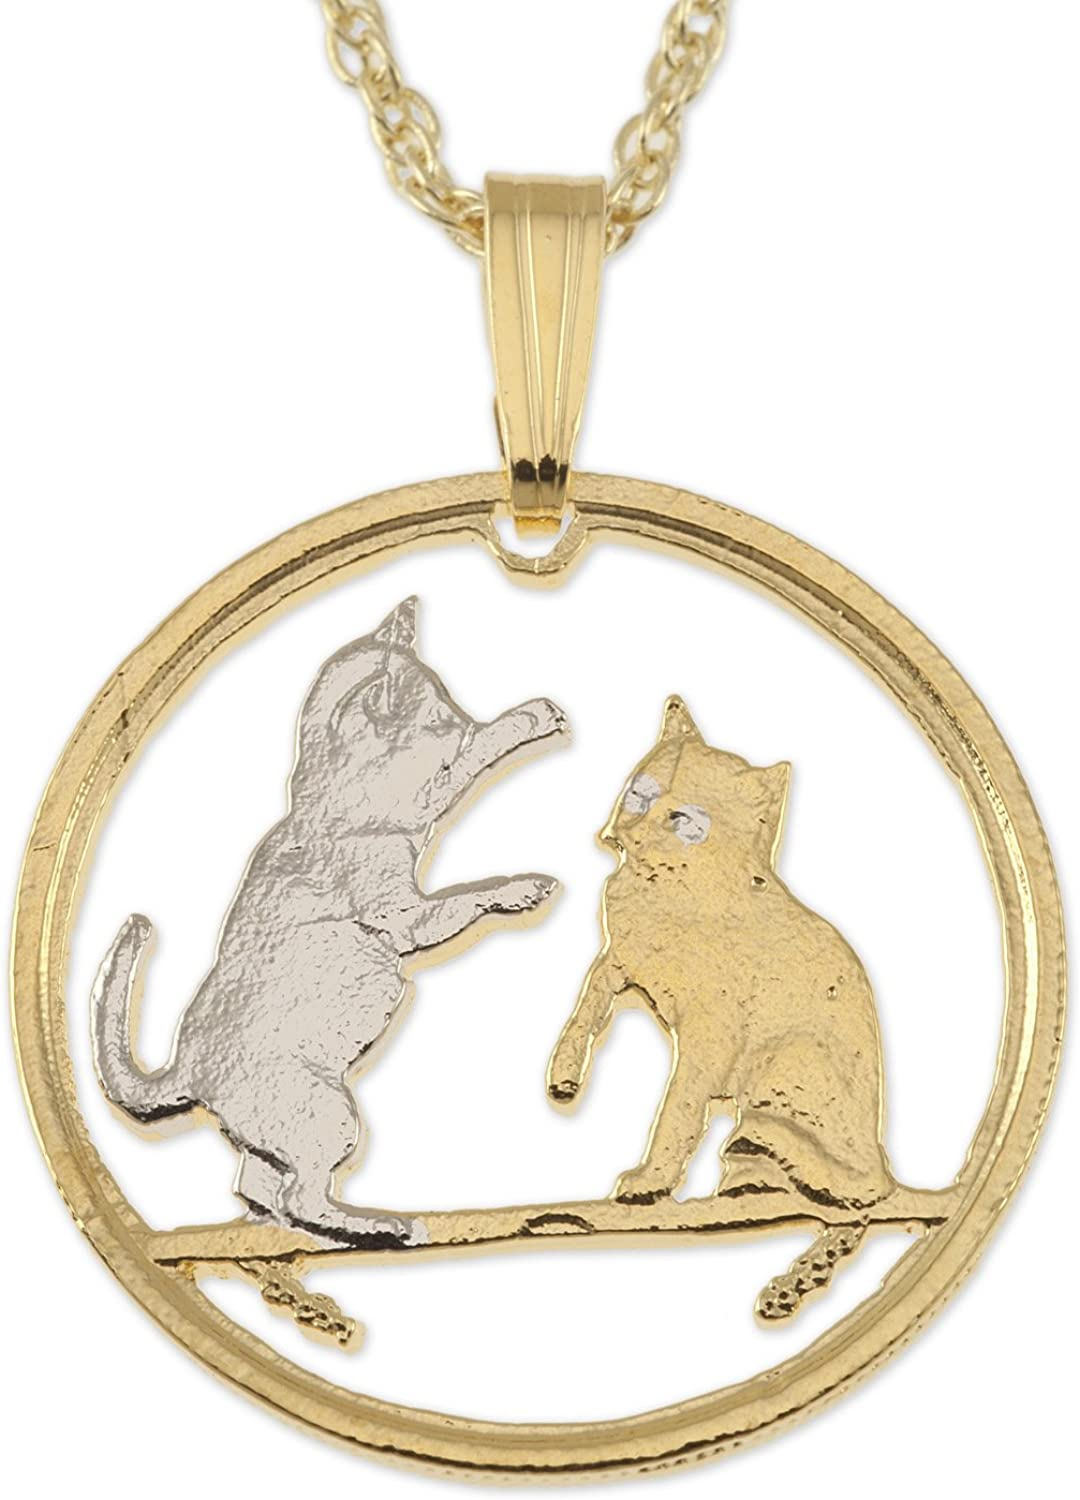 Cat Pendant Necklace 100% quality warranty Isle Coin Super popular specialty store Man Jewelry of